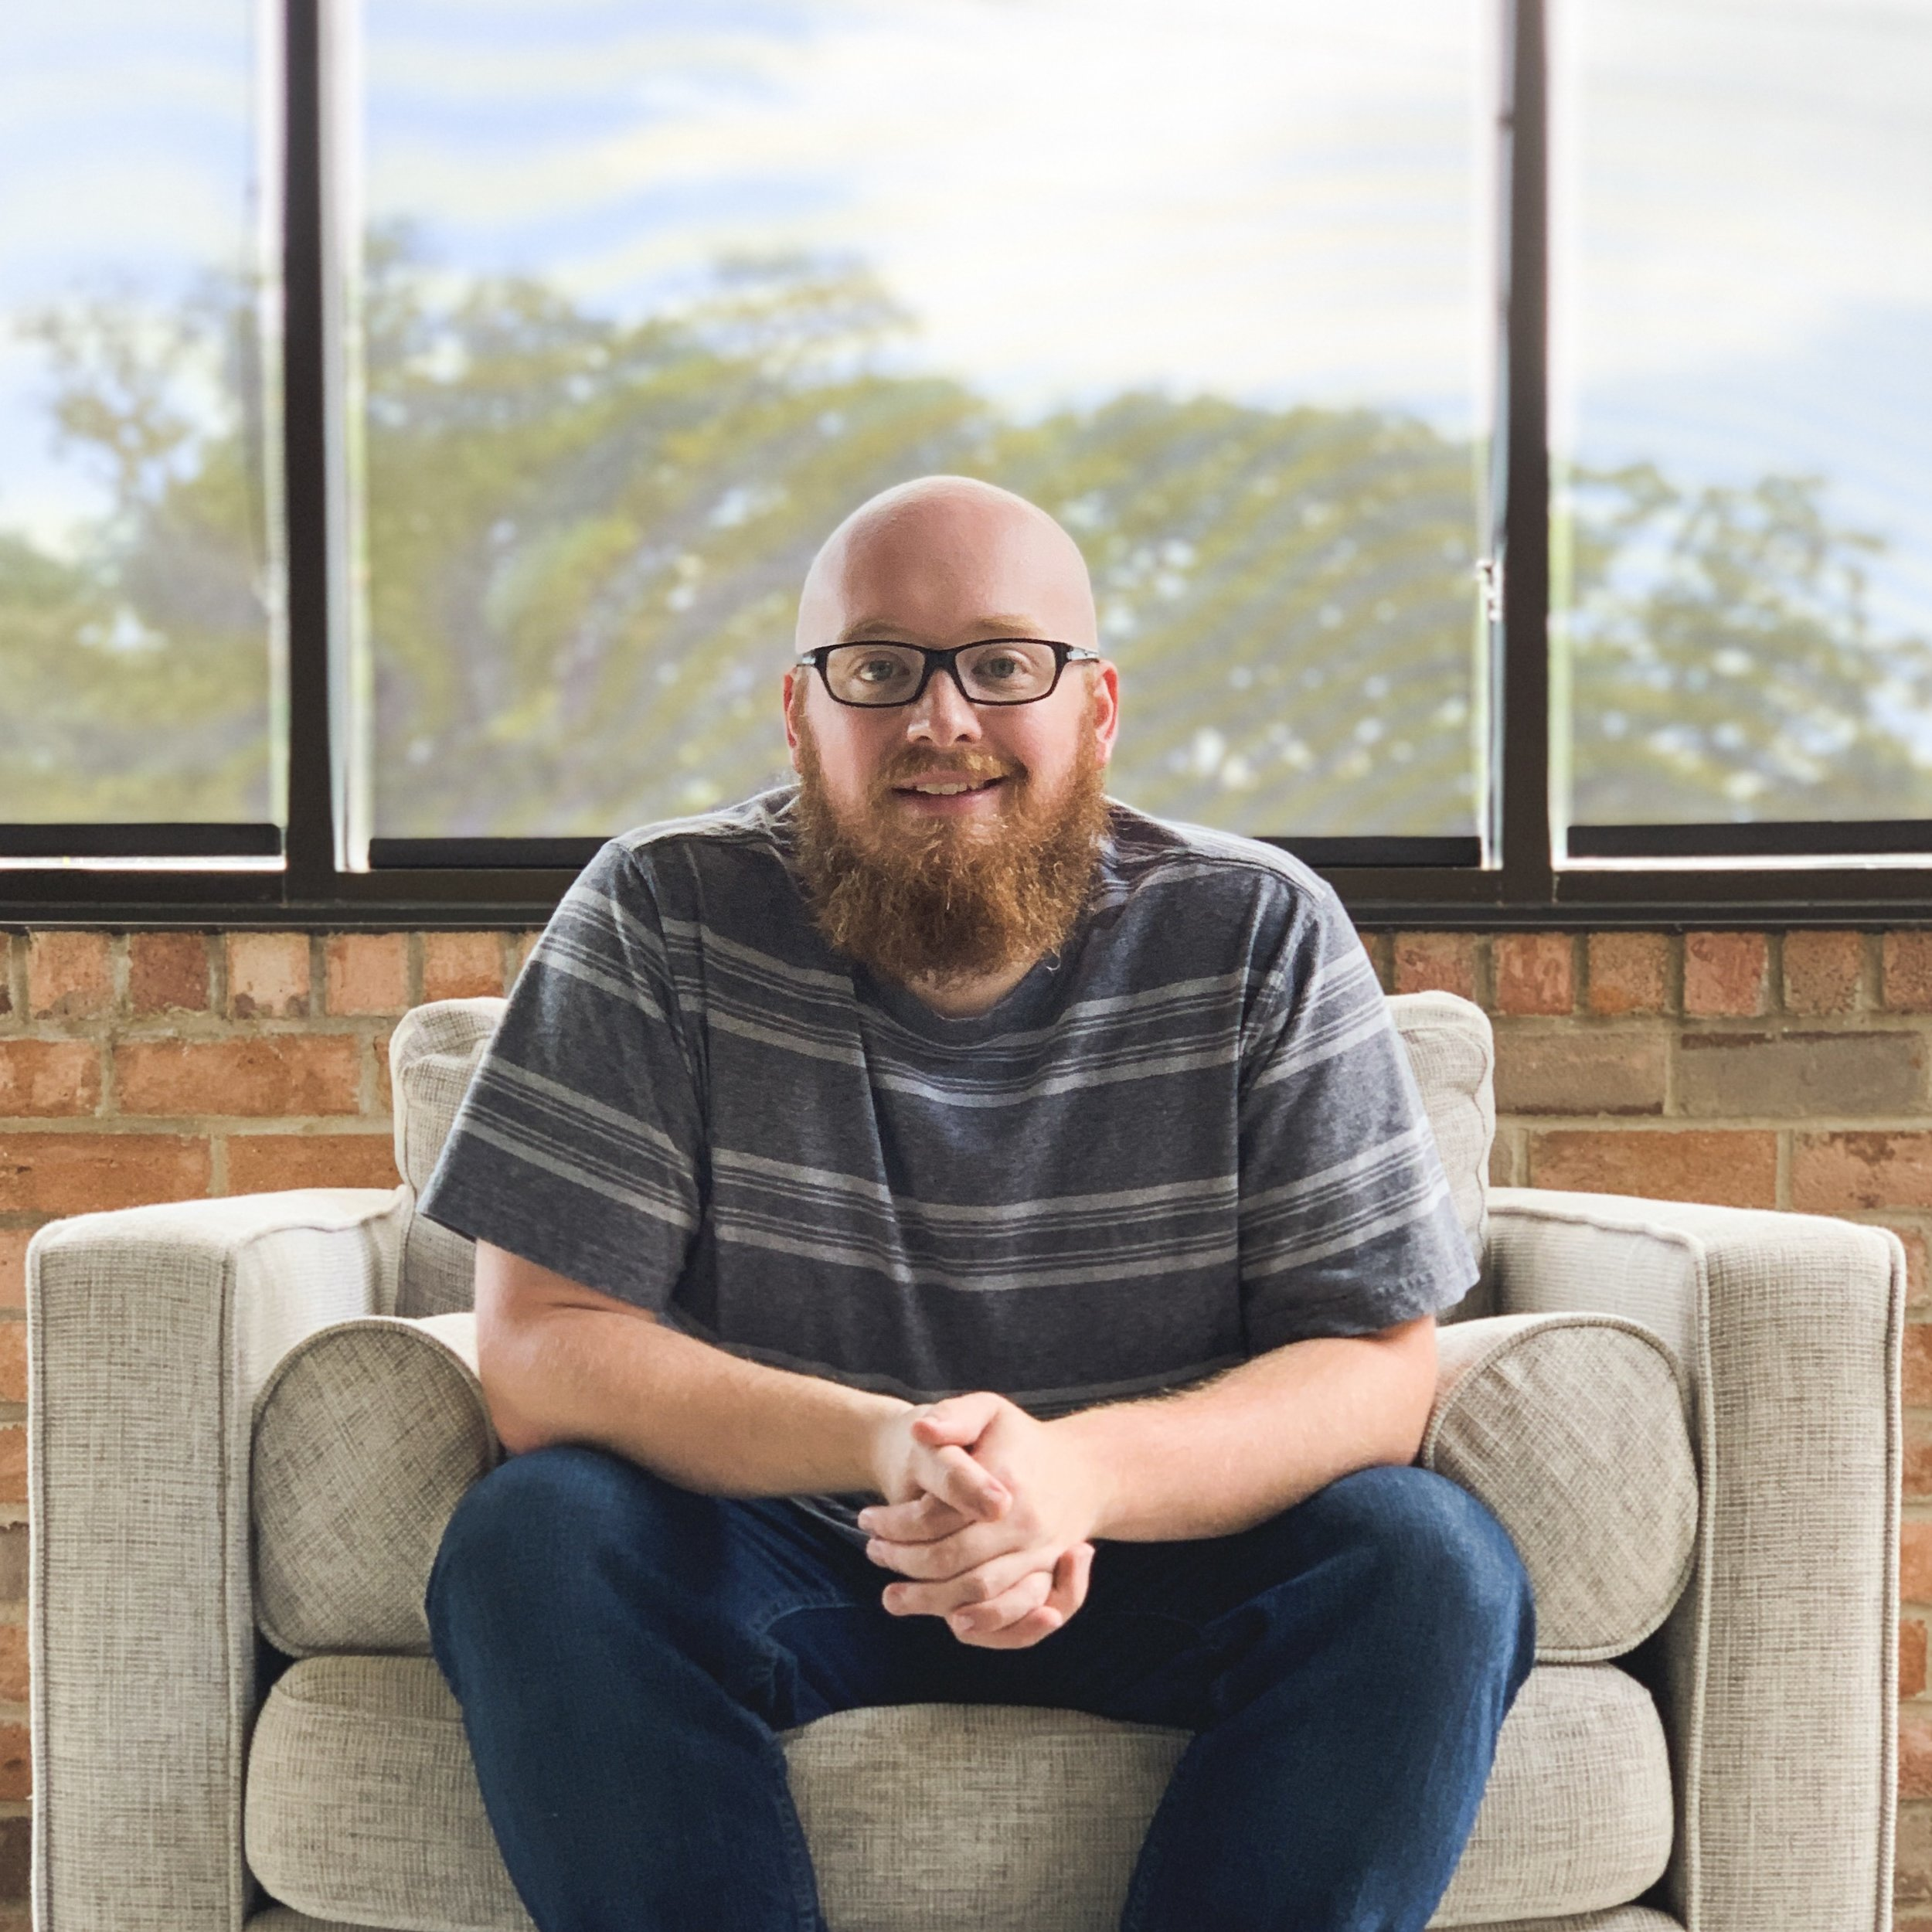 Worship director Paxston Cole - Paxston Cole was born and raised in Houston, Texas. He is the Worship Director, as well as the AV head for New Day DFW. Paxston was raised in church and always was involved with youth or drama ministries. After graduating high school he started to sing and lead worship, where God has kept him ever since. He has a passion for enabling others to enter into worship, and loves to spend time just soaking in God's presence. Paxston's interests include spending time with friends, board games, and learning new styles of cuisine to cook. He currently attends Christ for the Nations Institute where he plans on getting his degree in Pastoral Ministries.